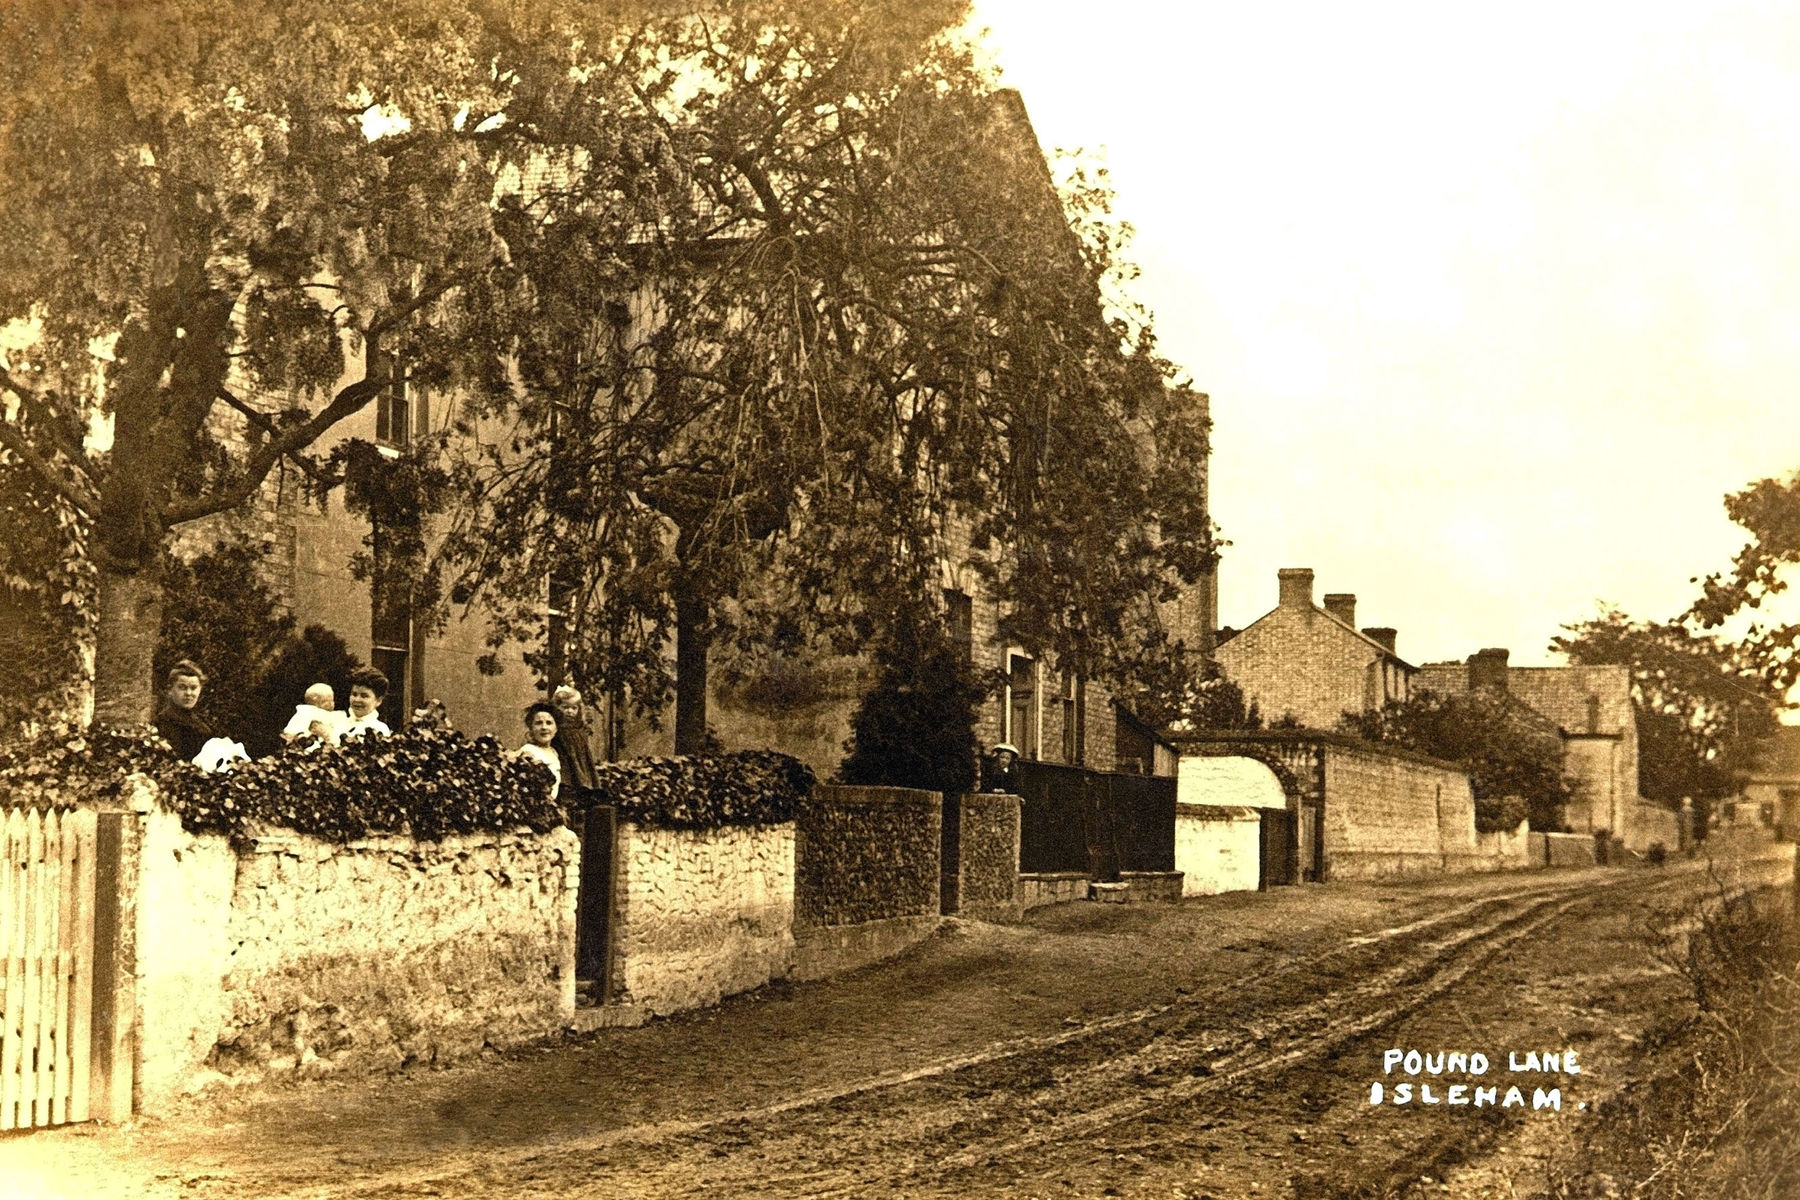 Isleham Pound Lane 1890 copy.jpg - Pound Lane, Chapel centre  1890's